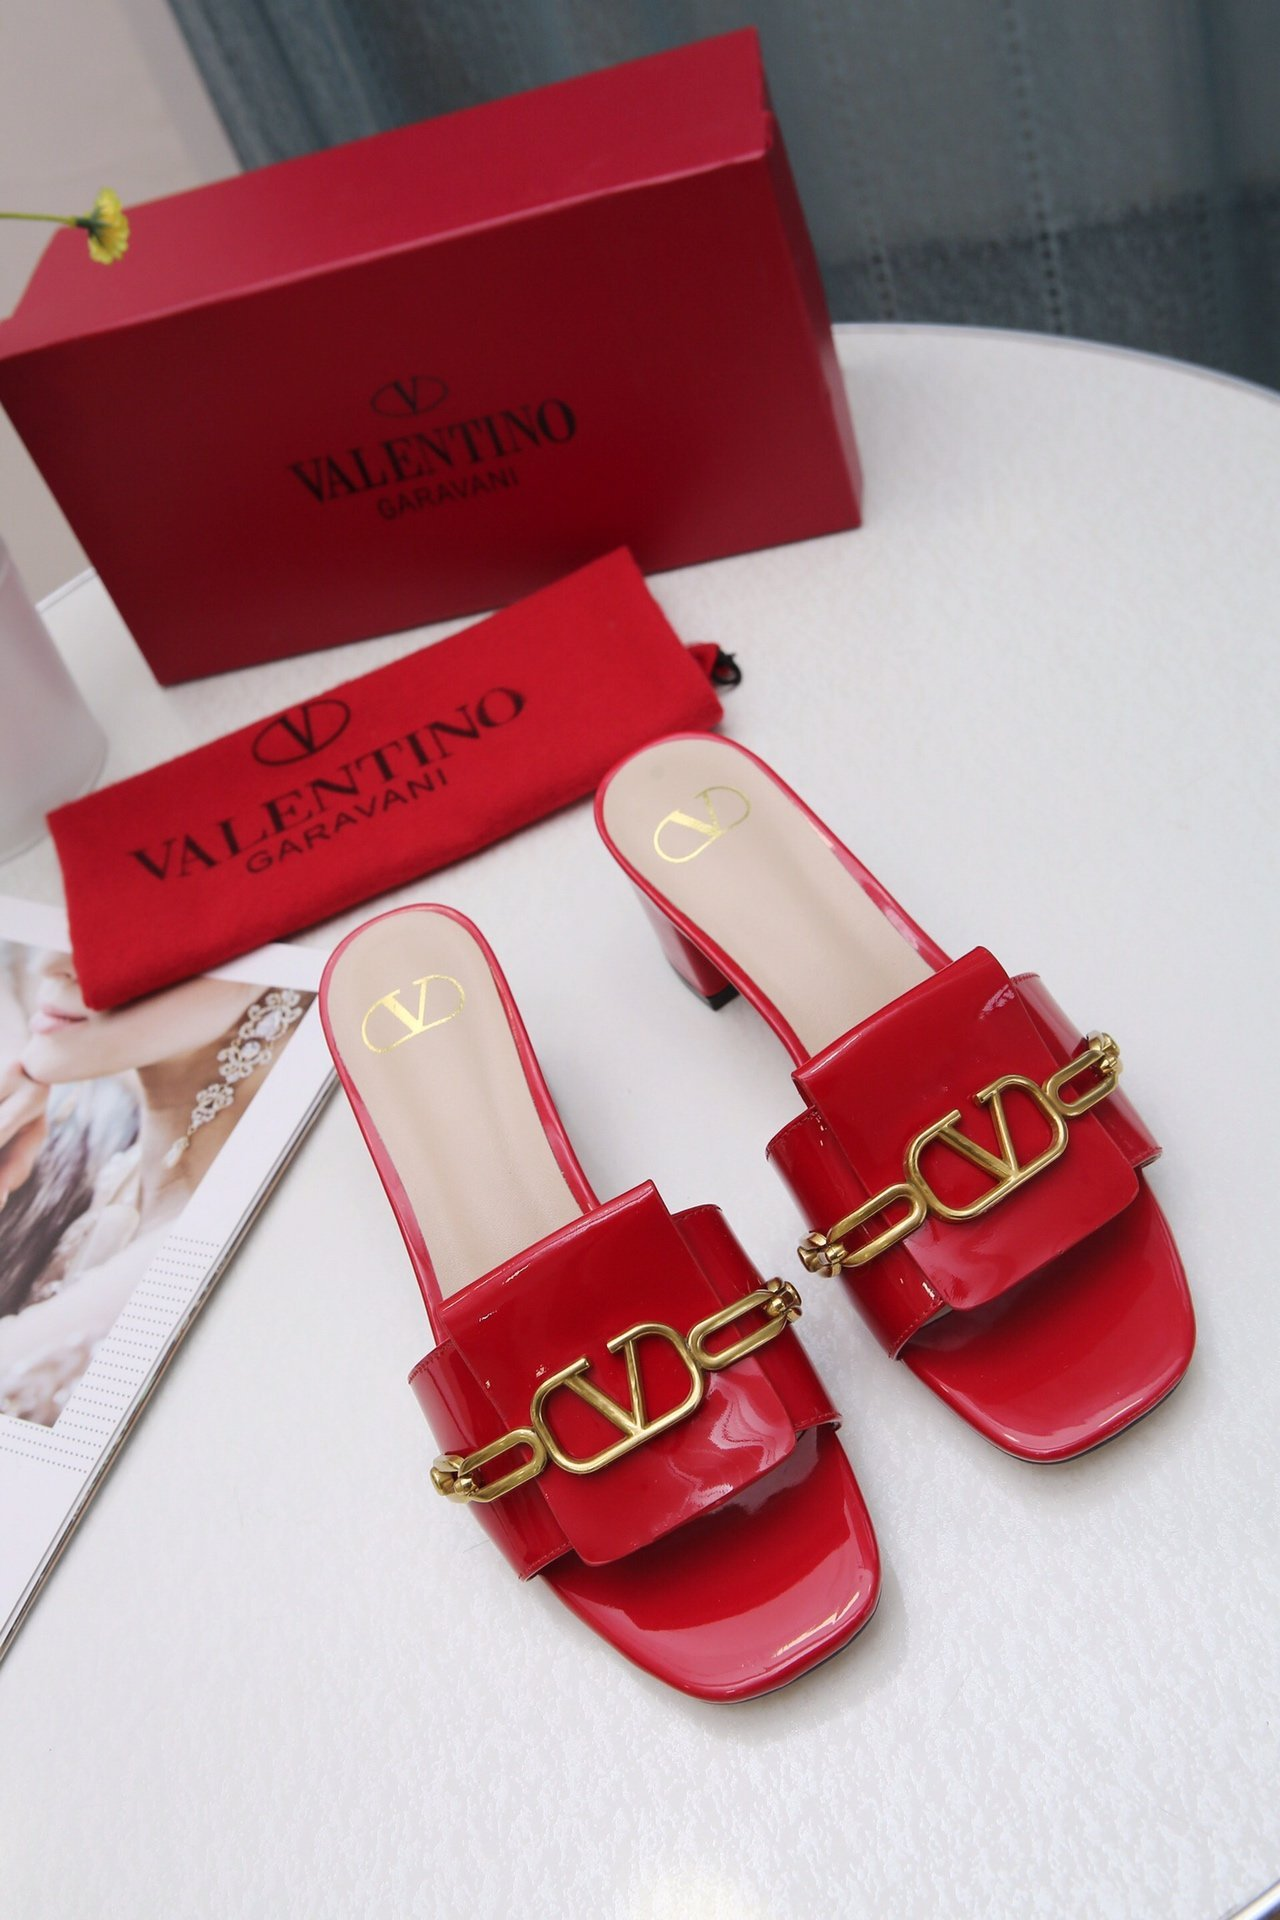 Image of Valentino Women Casual Shoes Boots fashionable casual leather Women Heels Sandal Shoes